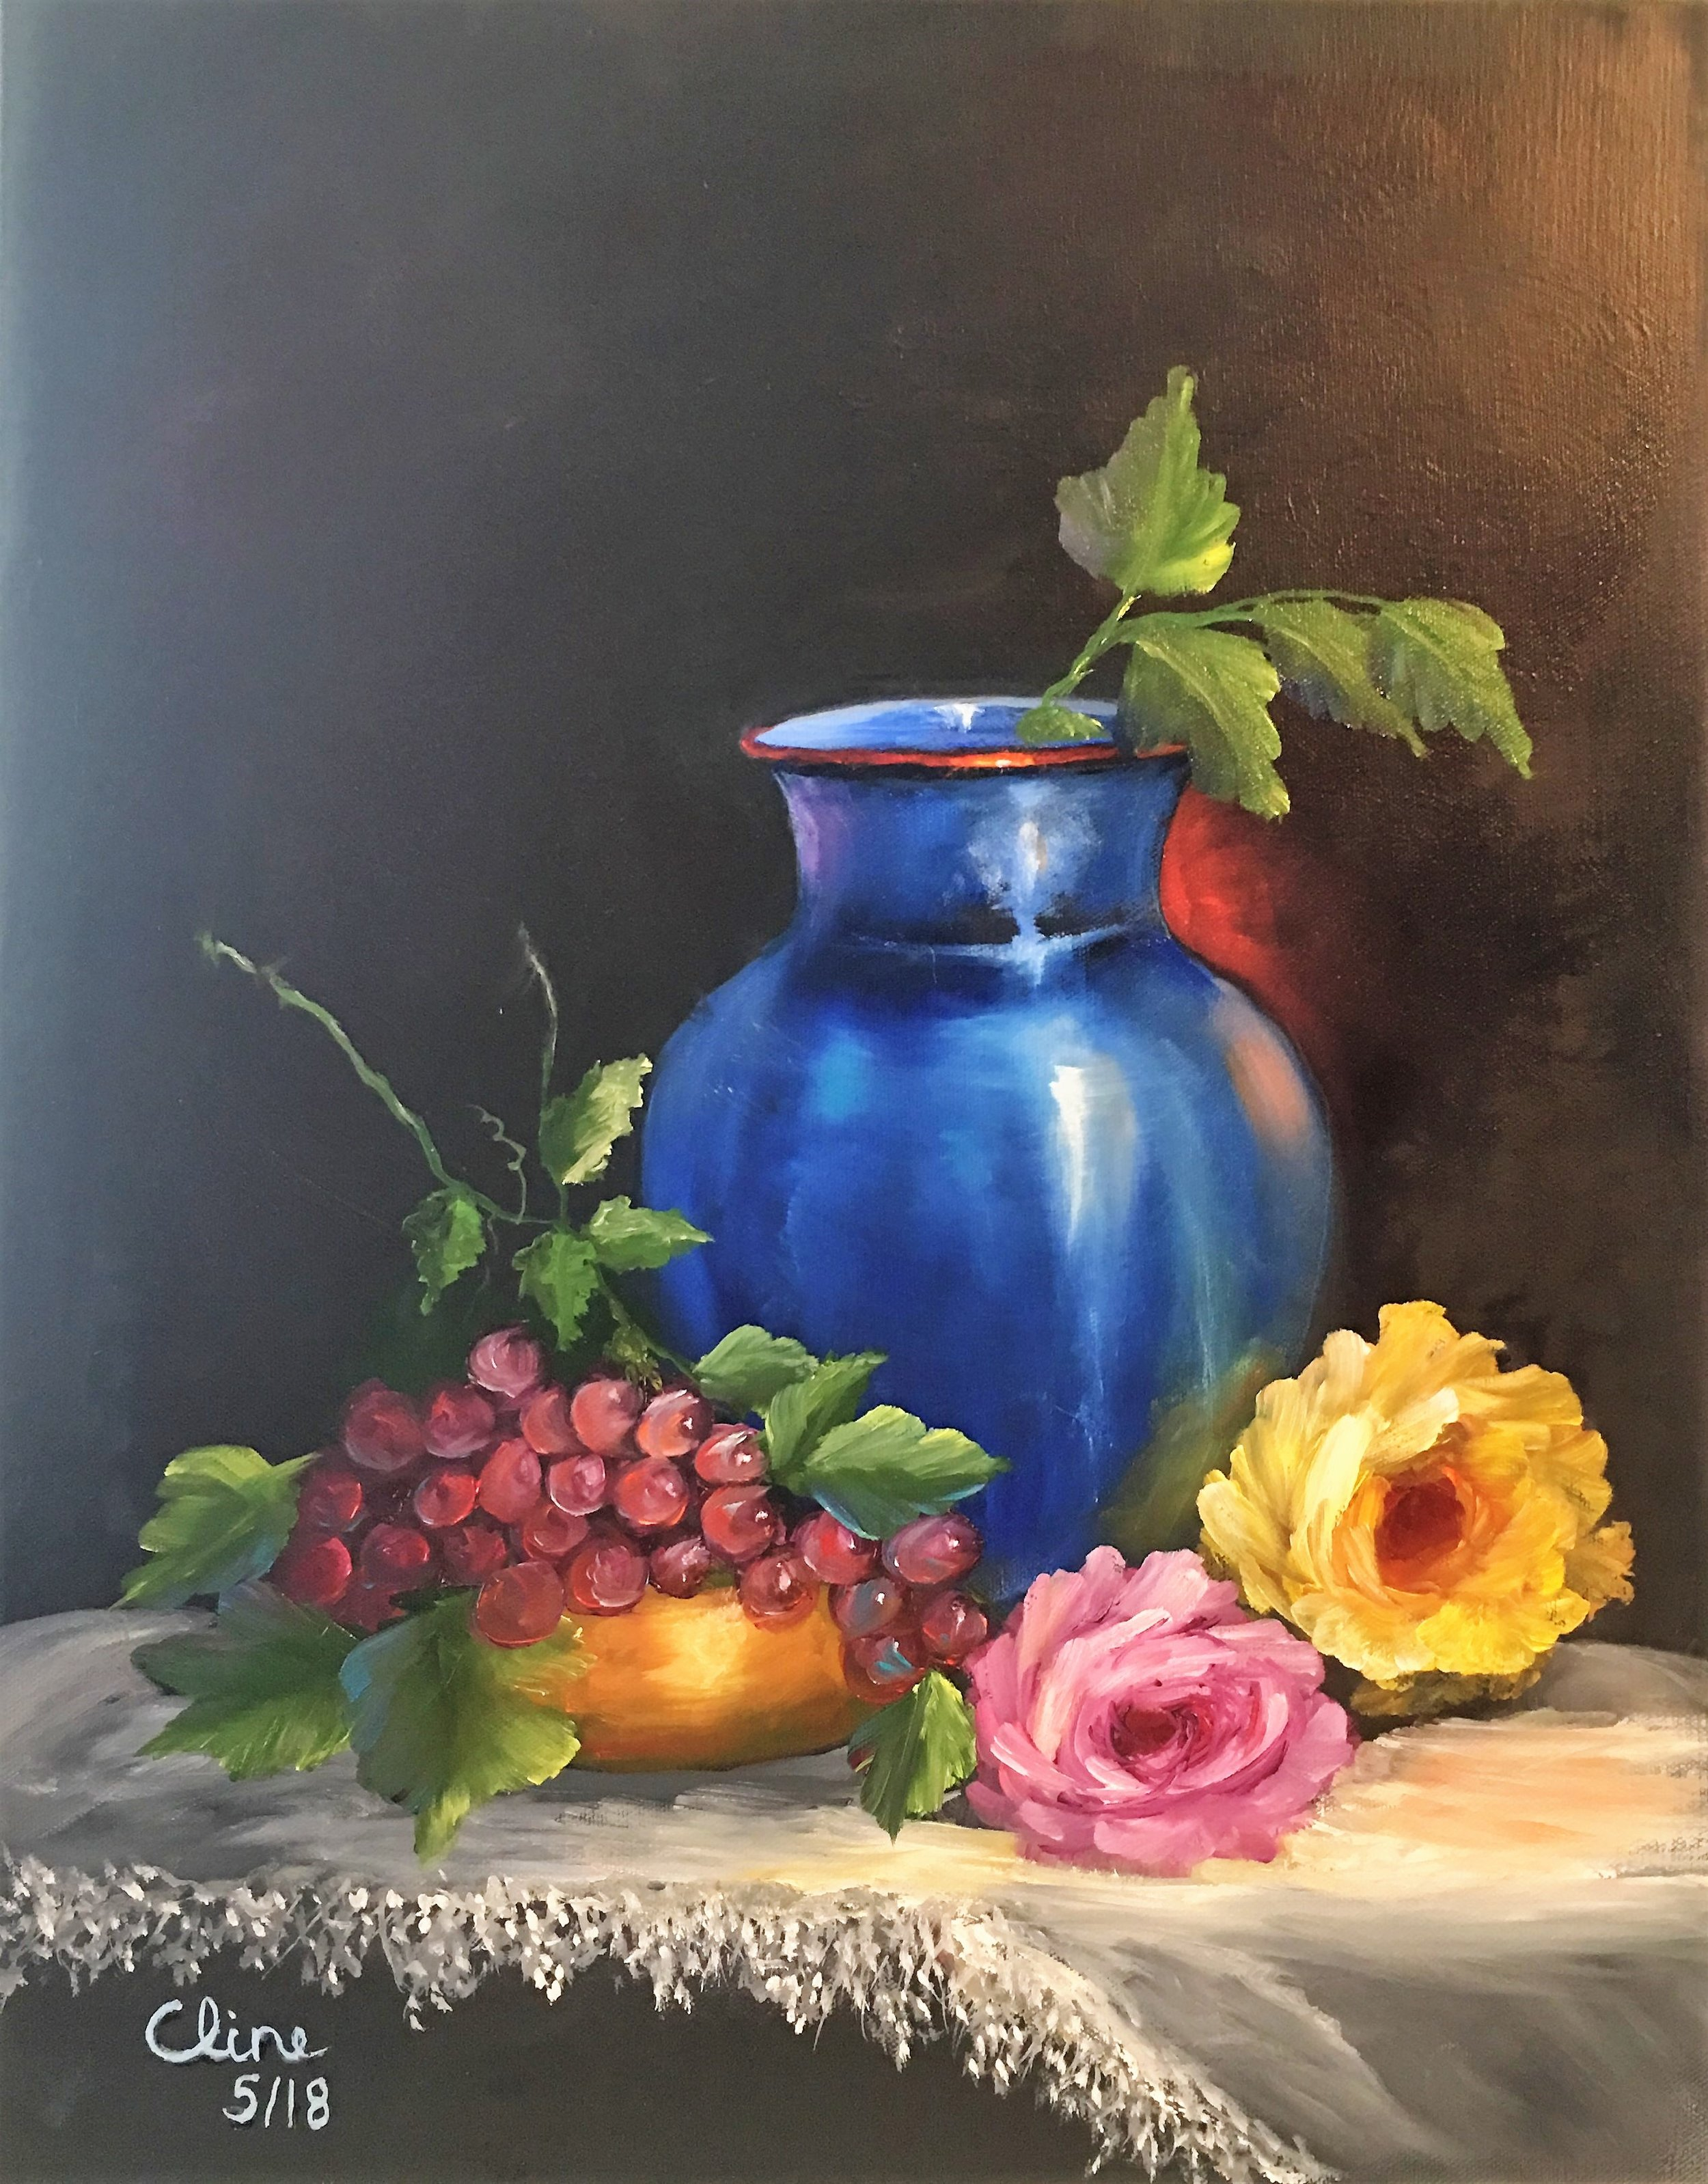 Grapes and Flowers in Blue Vase and Brass Bowl